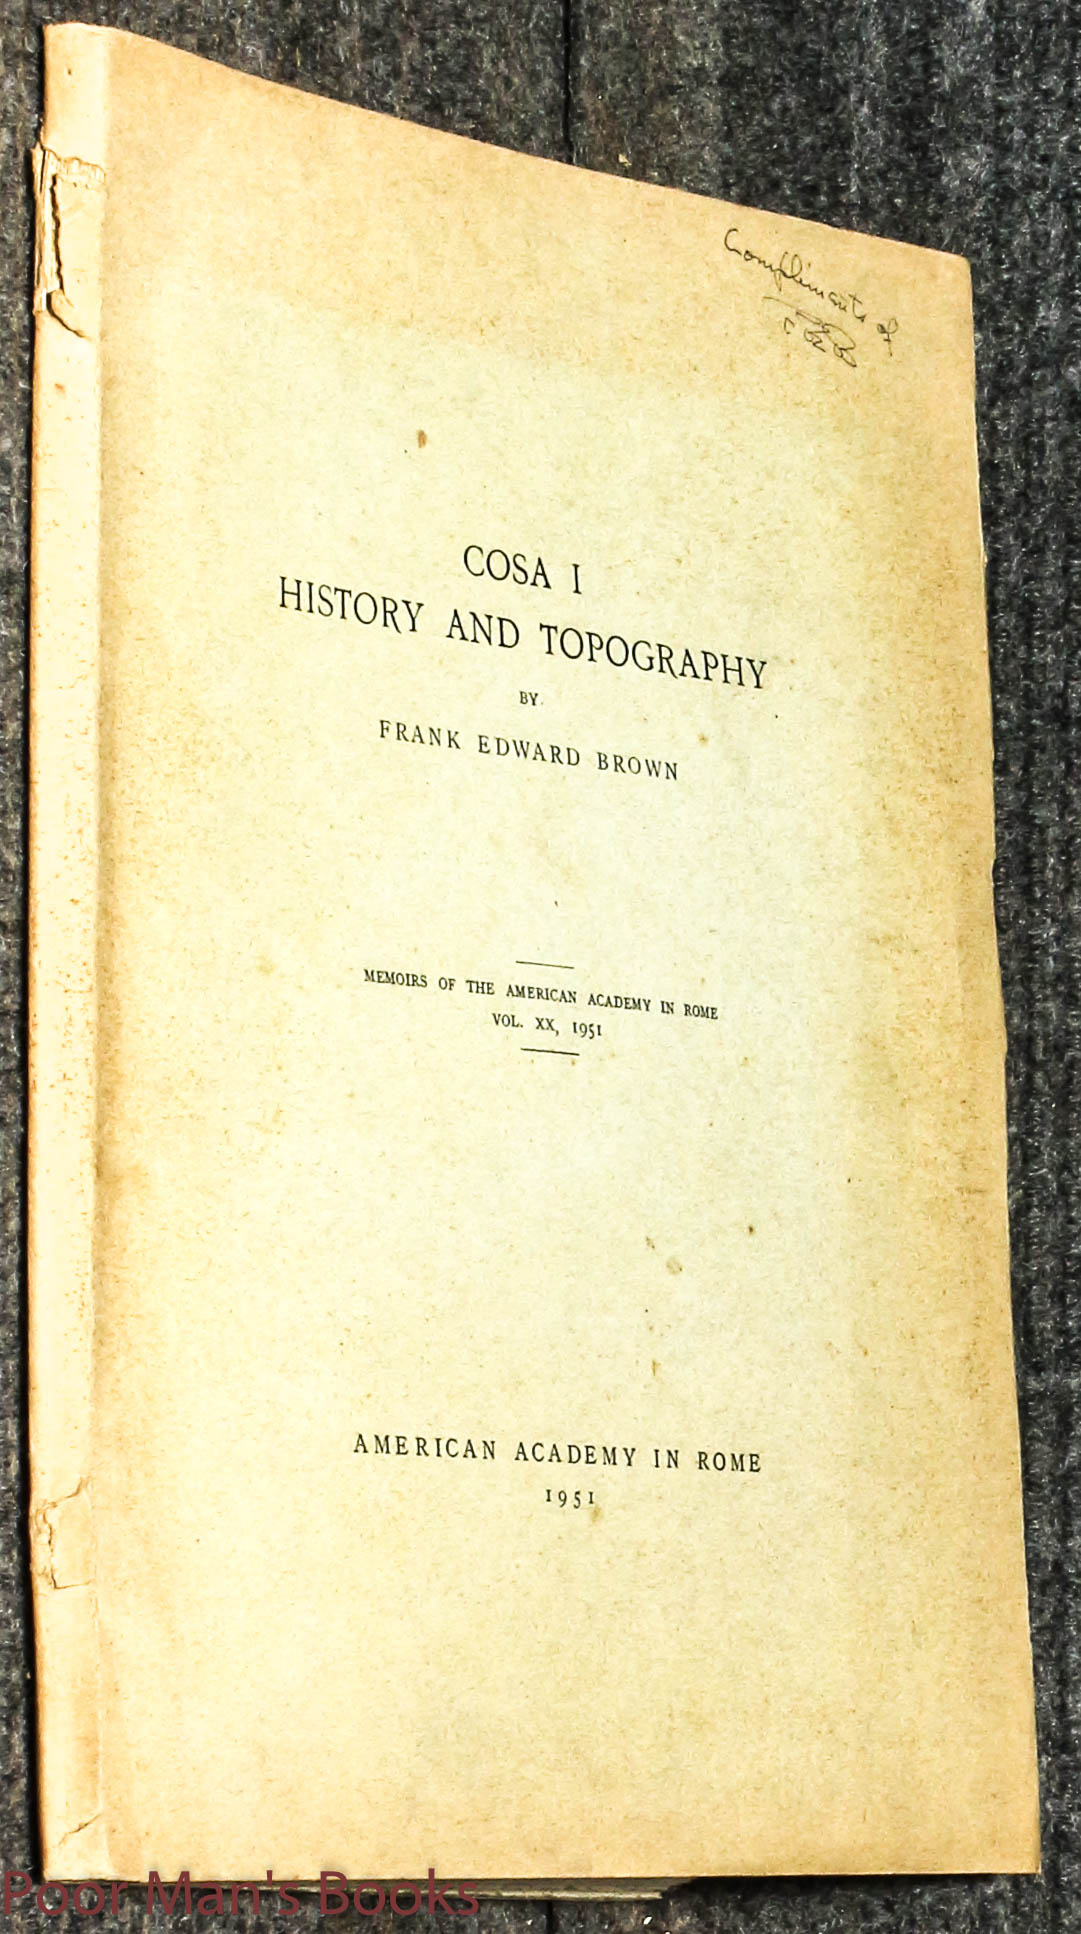 Image for Cosa I History And Topography 1951 Presentation Copy Signed